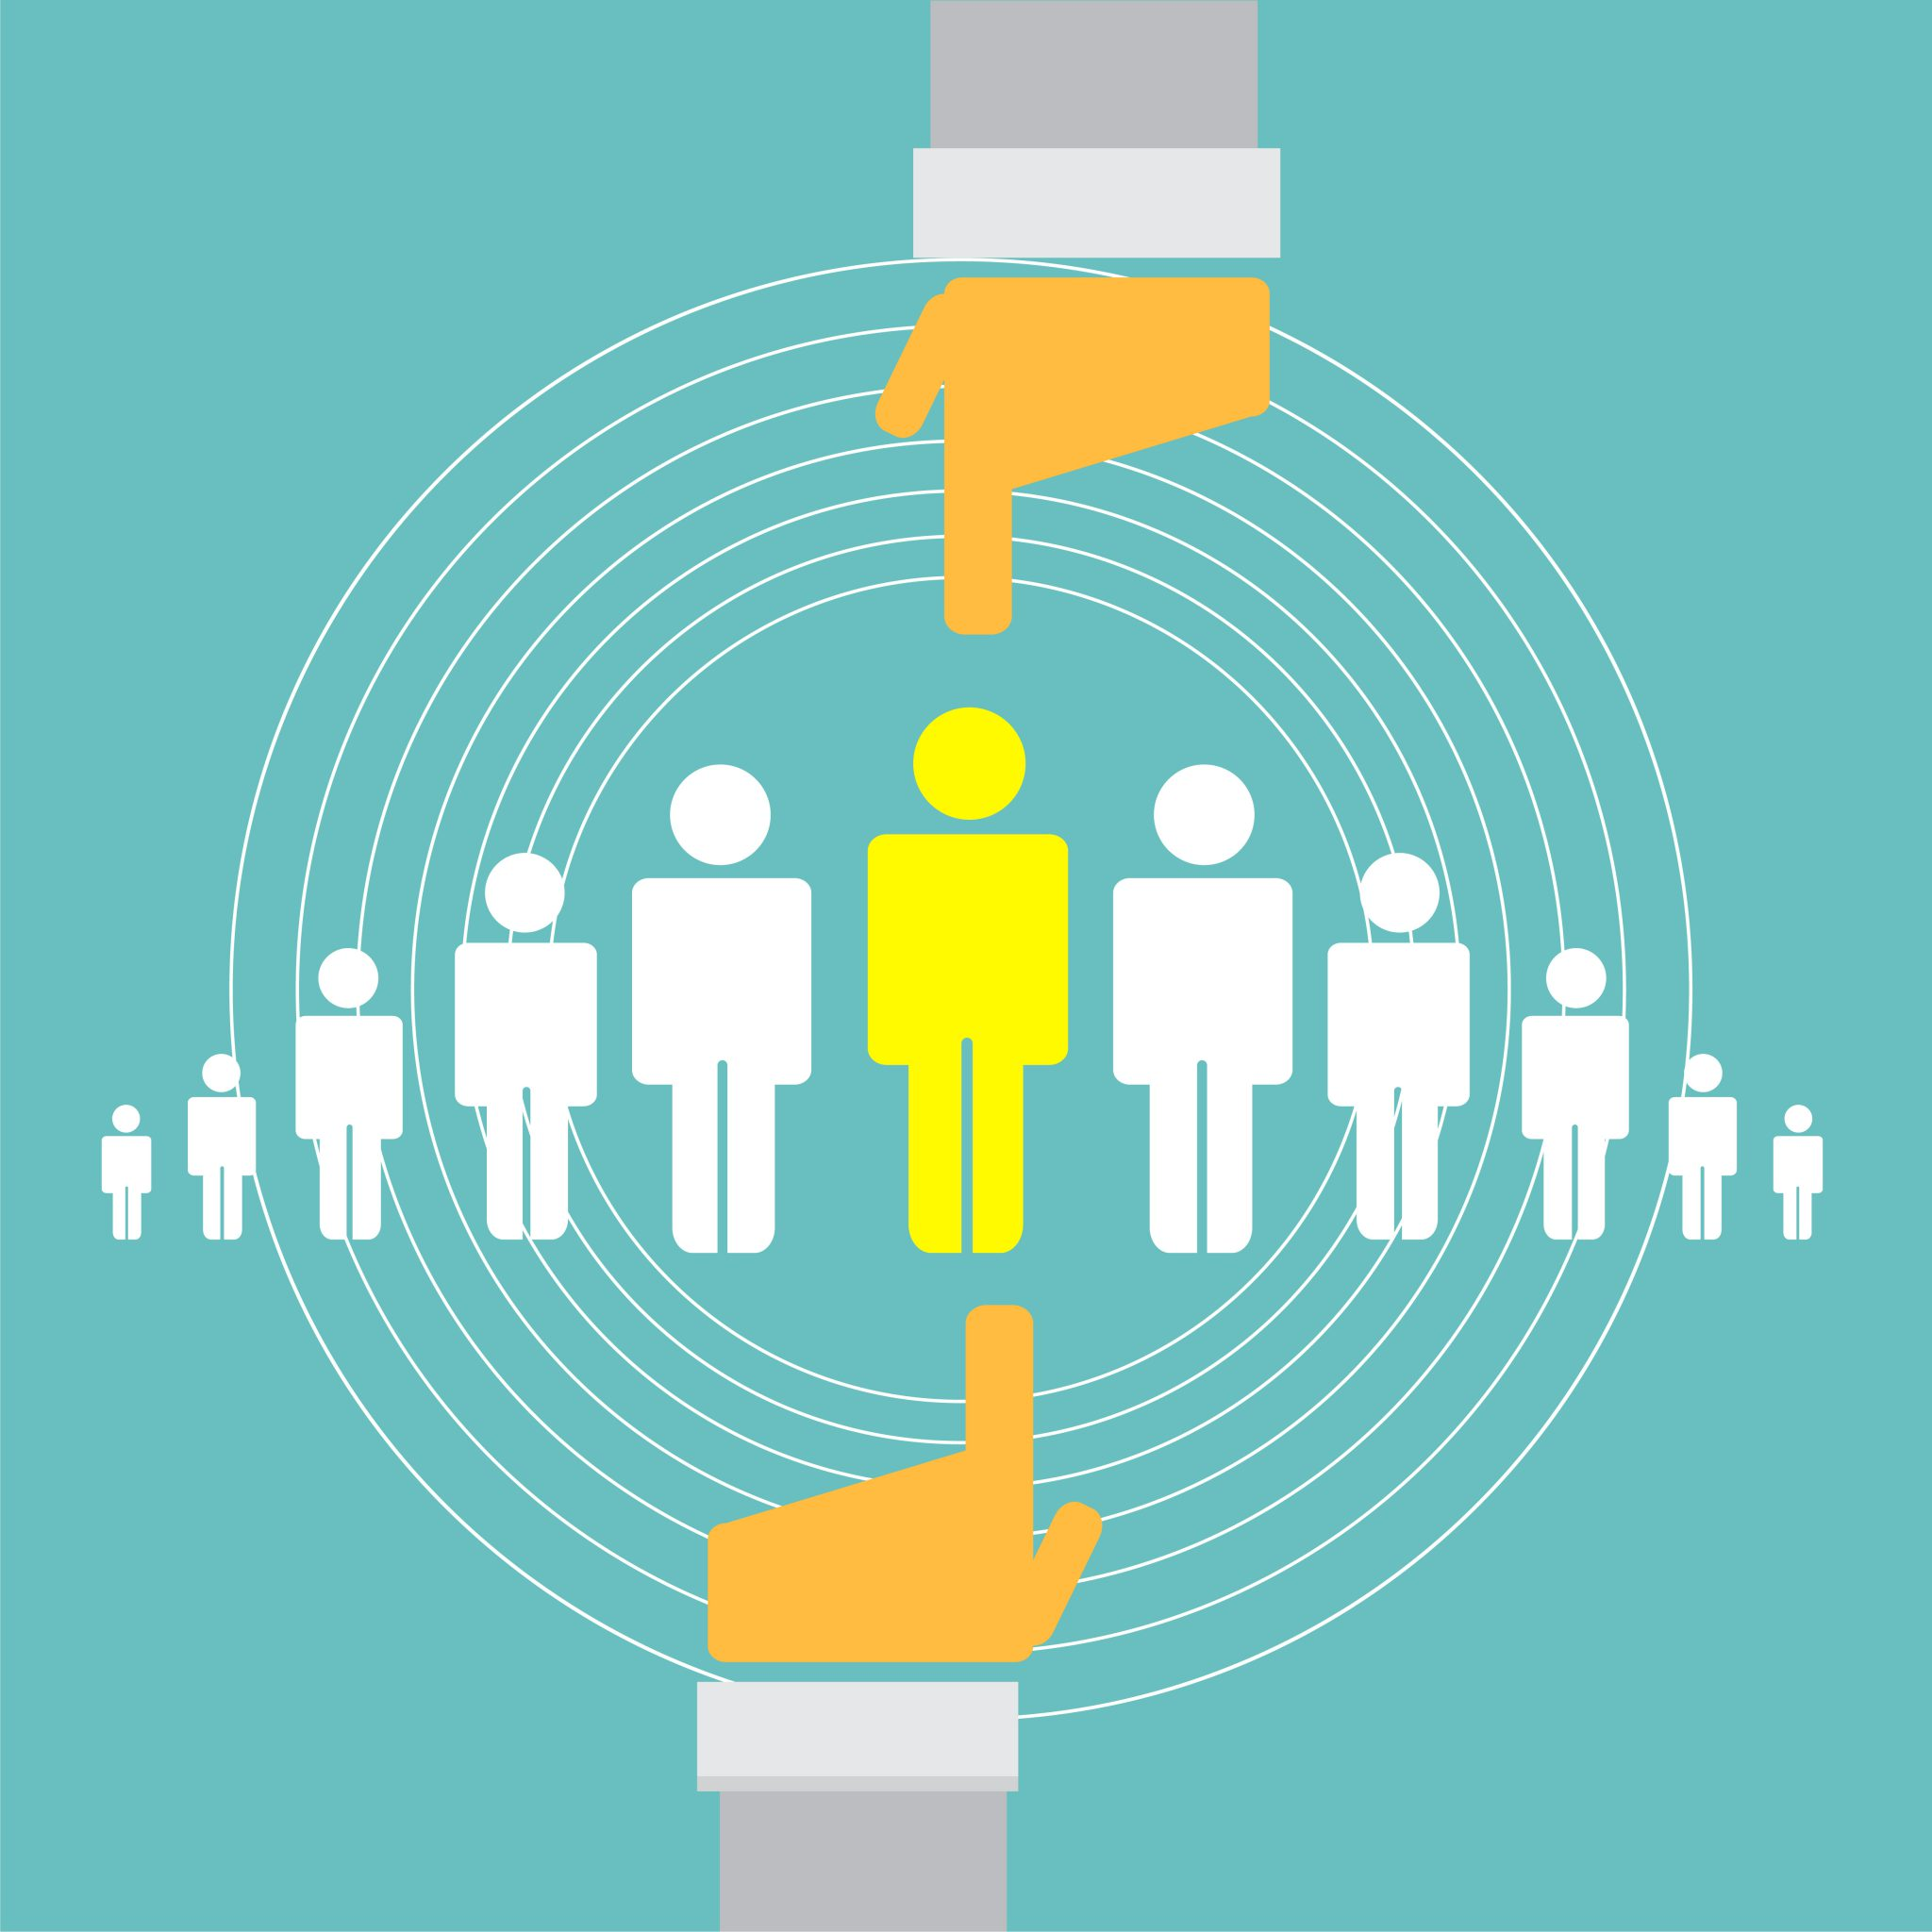 Fingers point to the one person out of ten to choose for succession planning